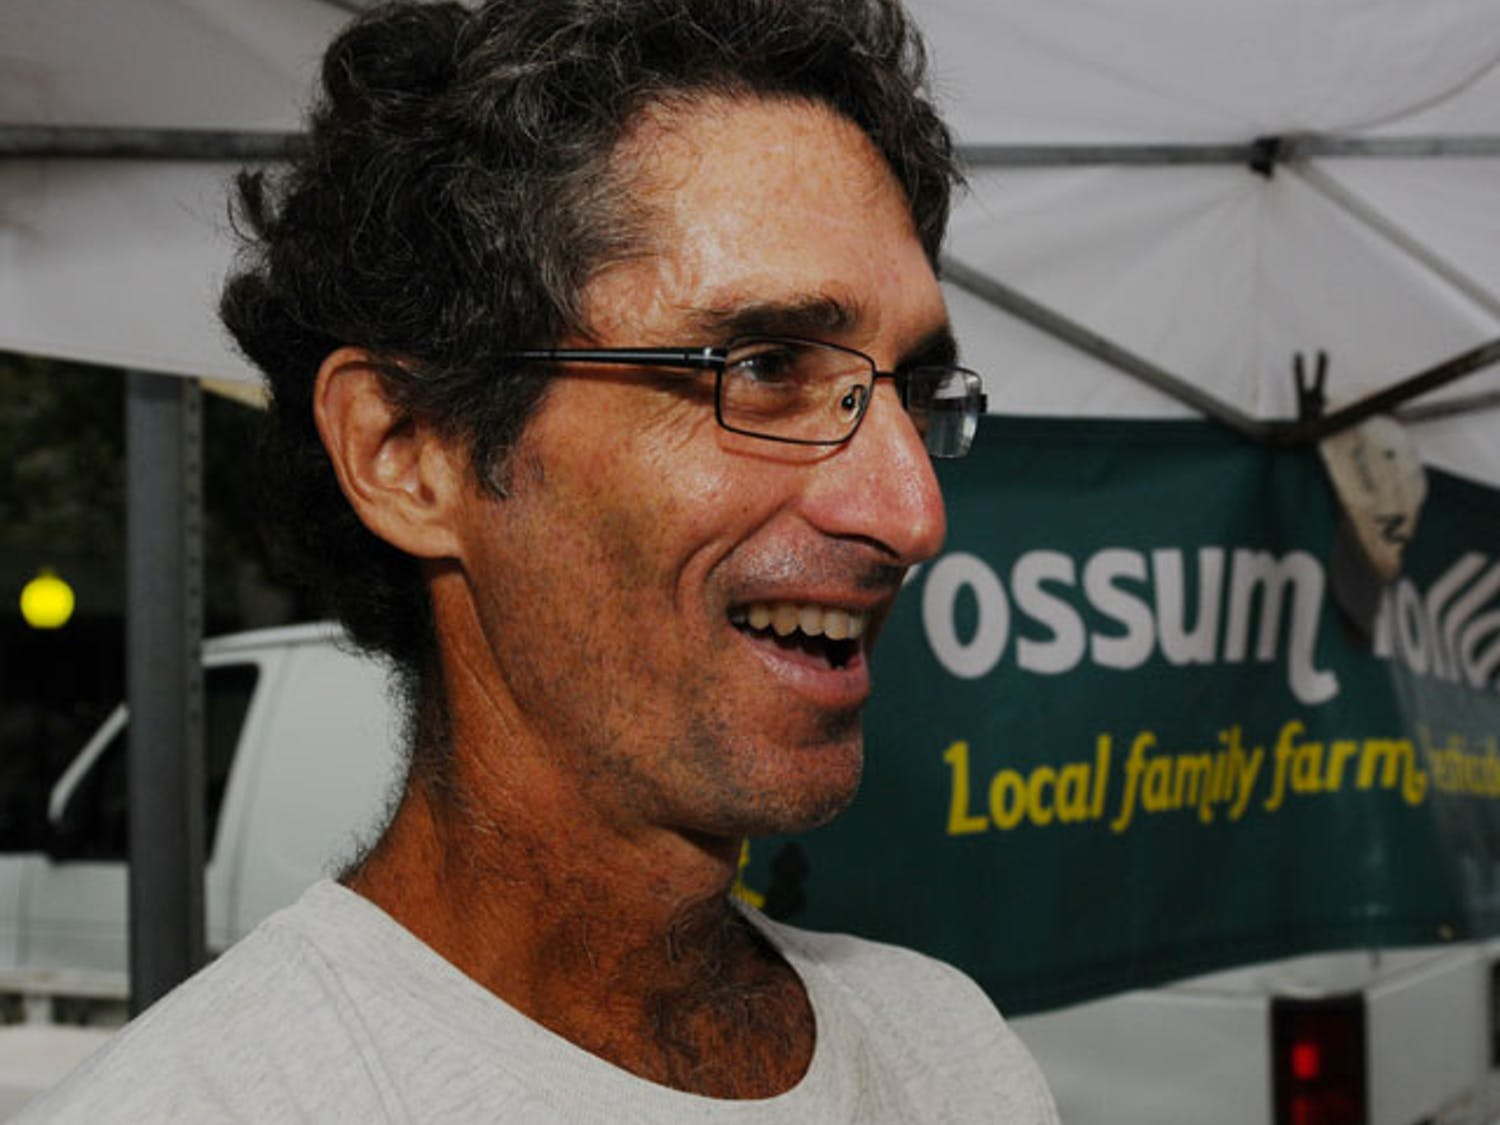 Joe Durando, a two-time UF alumnus, runs the Possum Hollow Farm, located 15 miles north of Gainesville. His produce will be for sale at the Union Street Farmers Market on Wednesdays from 4 to 7 p.m.